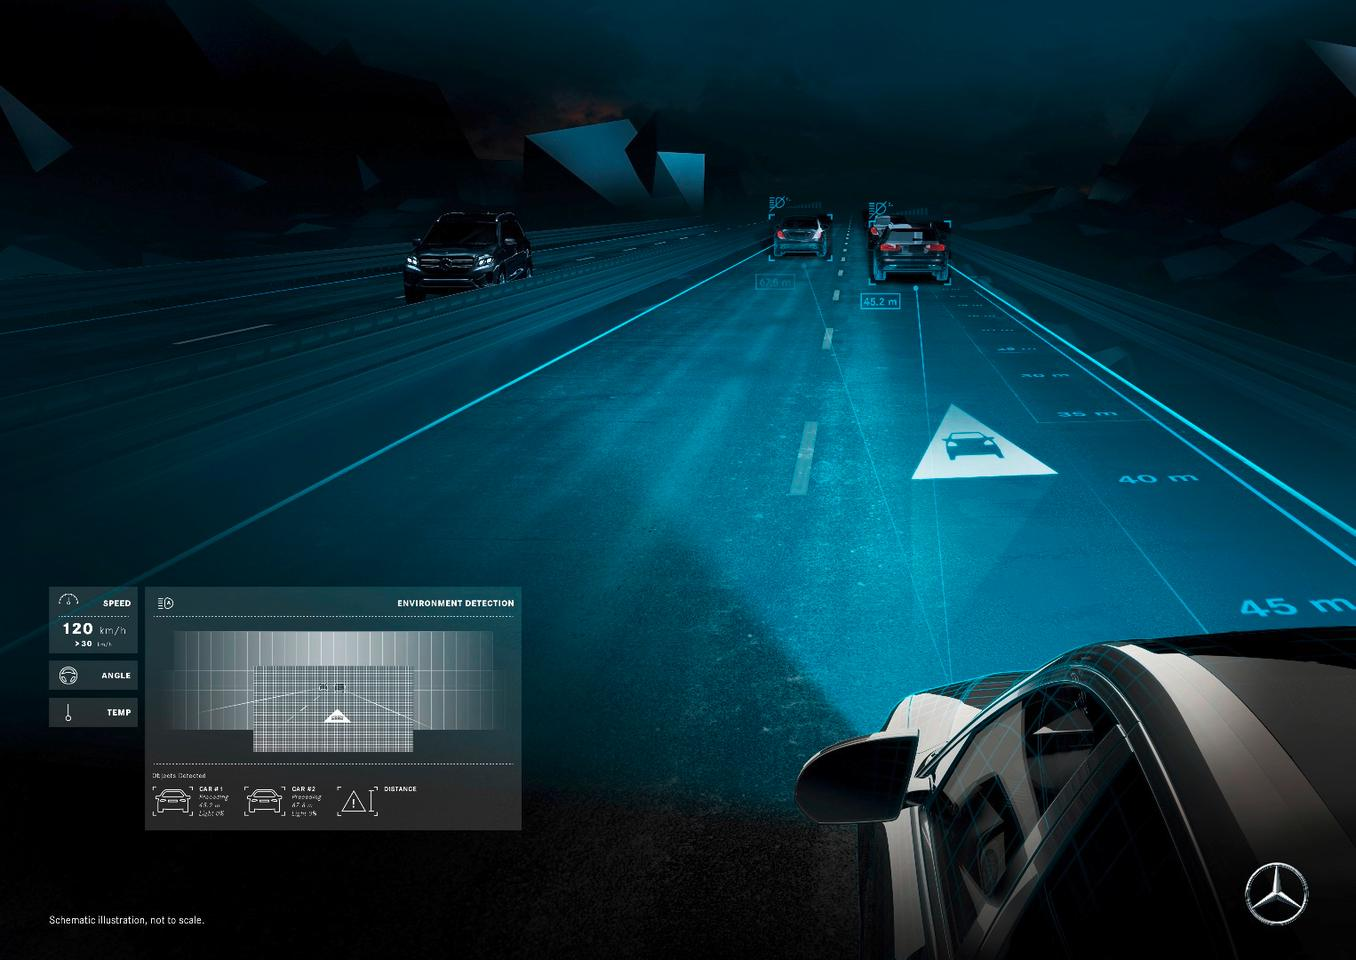 Mercedes-Maybach's Digital Light: safe distance warning shows how close you should be following the car in front at the speed you're doing